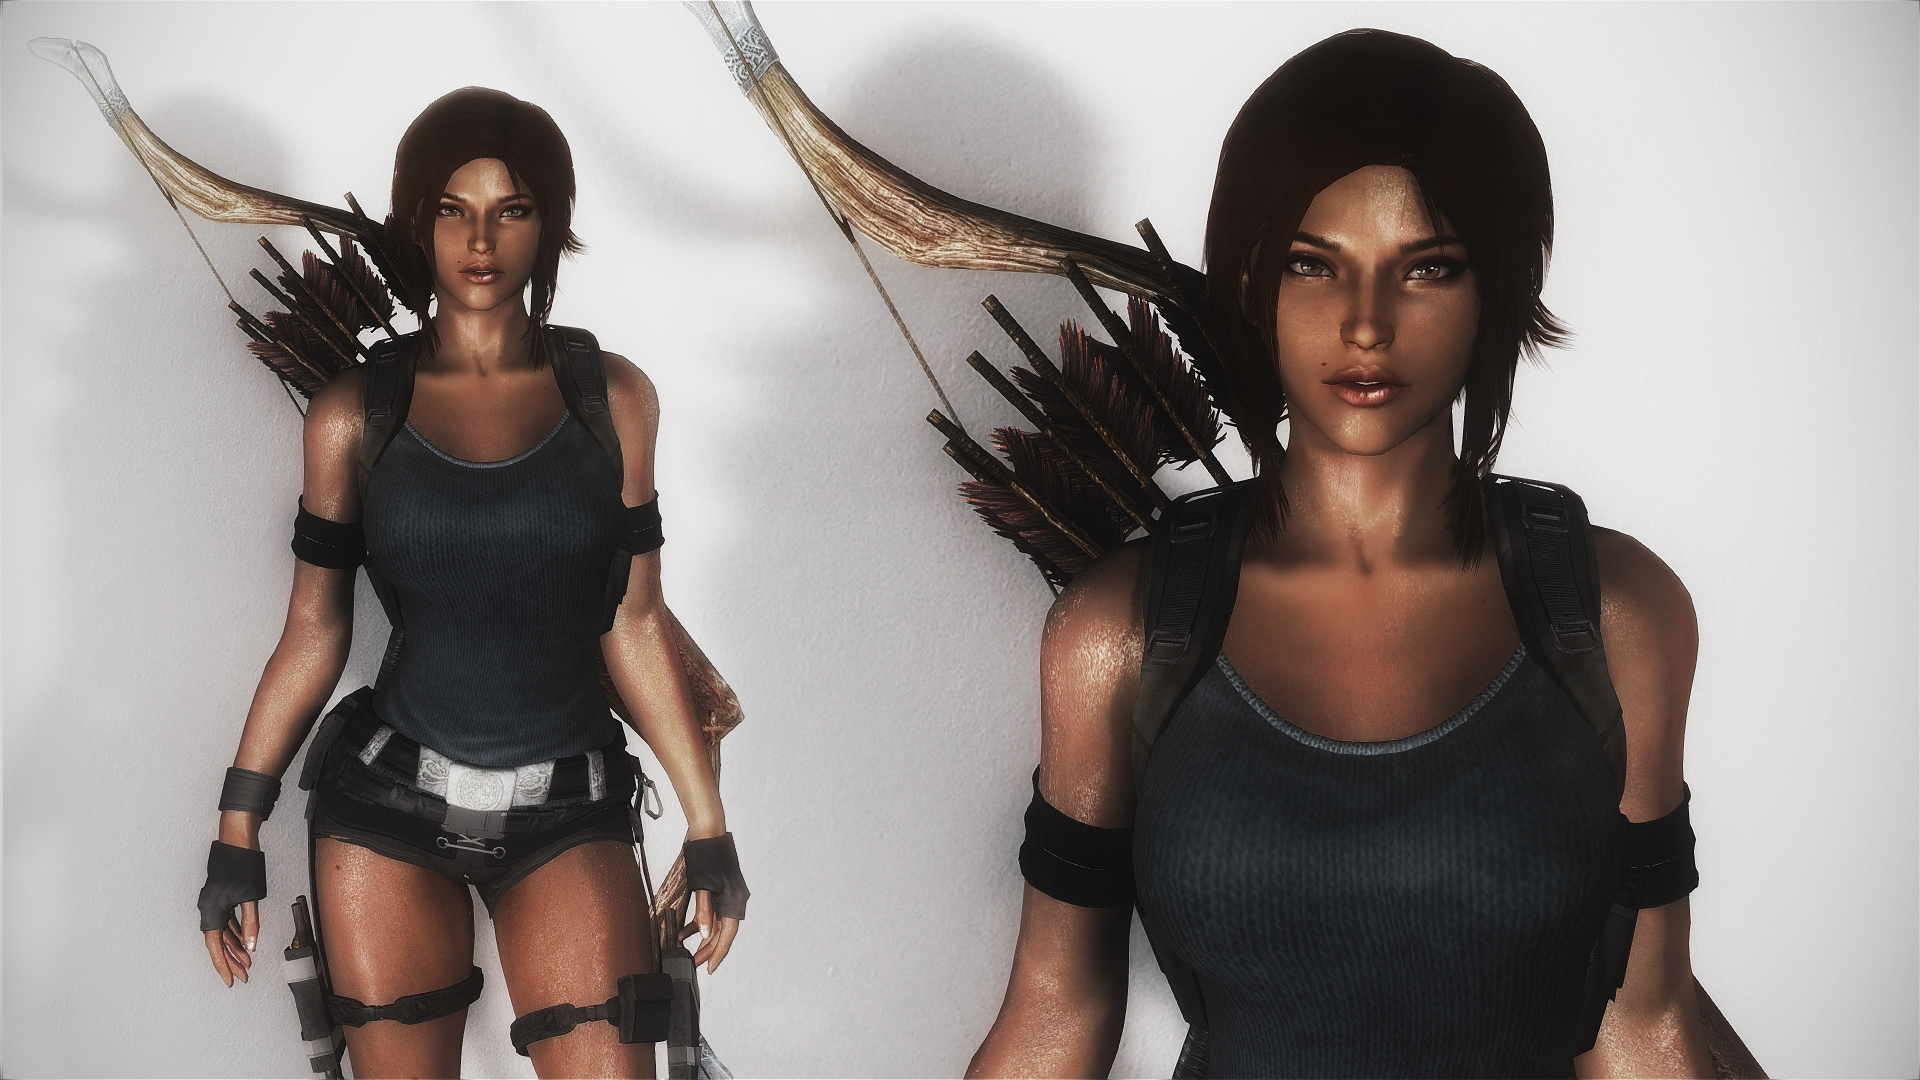 Porncraft of tomb raider adult pic